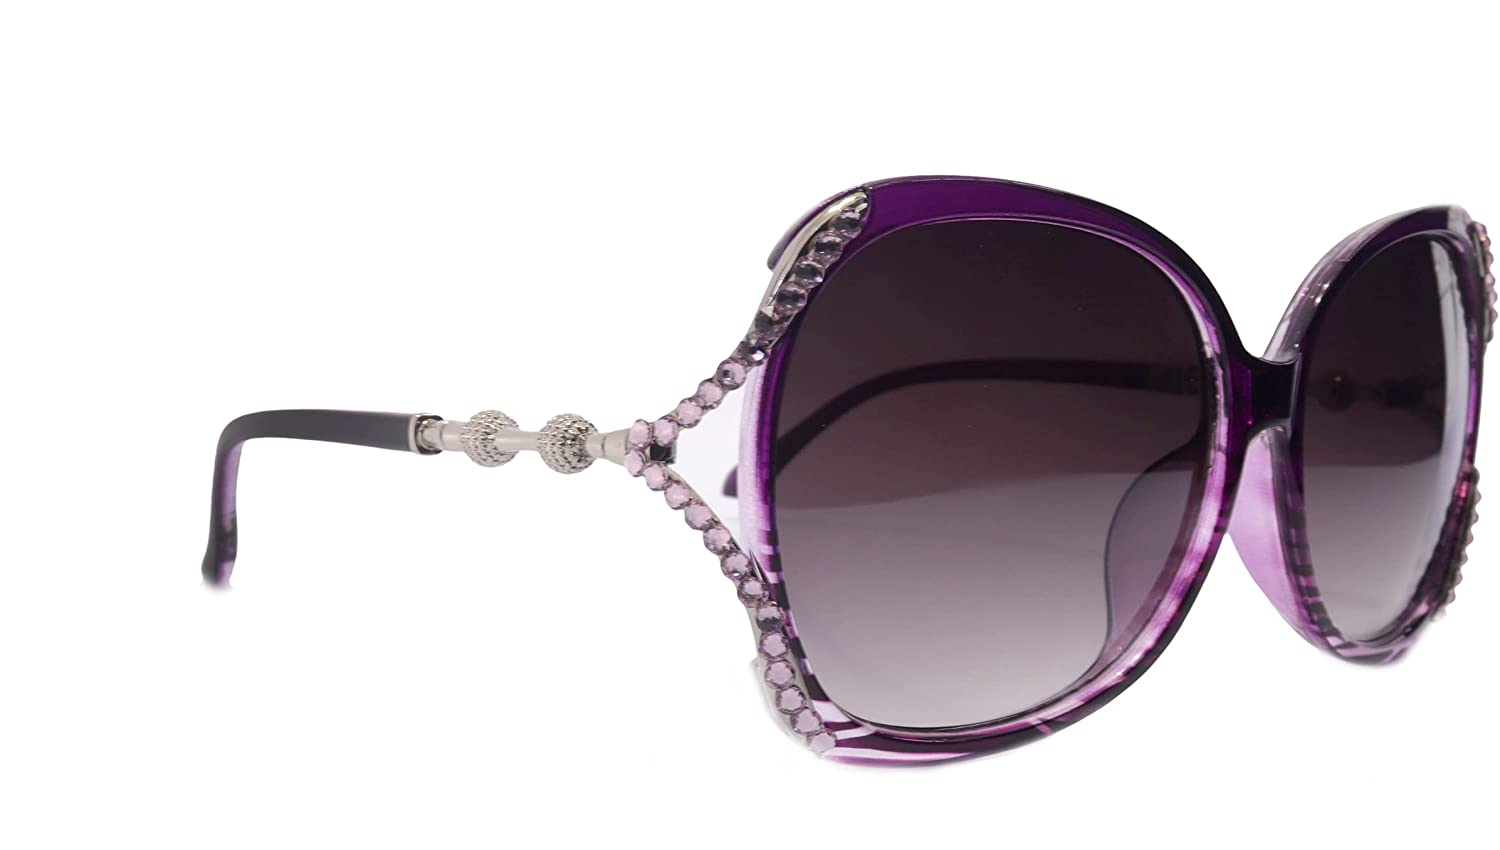 Bling Women Very popular Sunglasses Adorned w Max 58% OFF 100% N UV Protection. Crystals